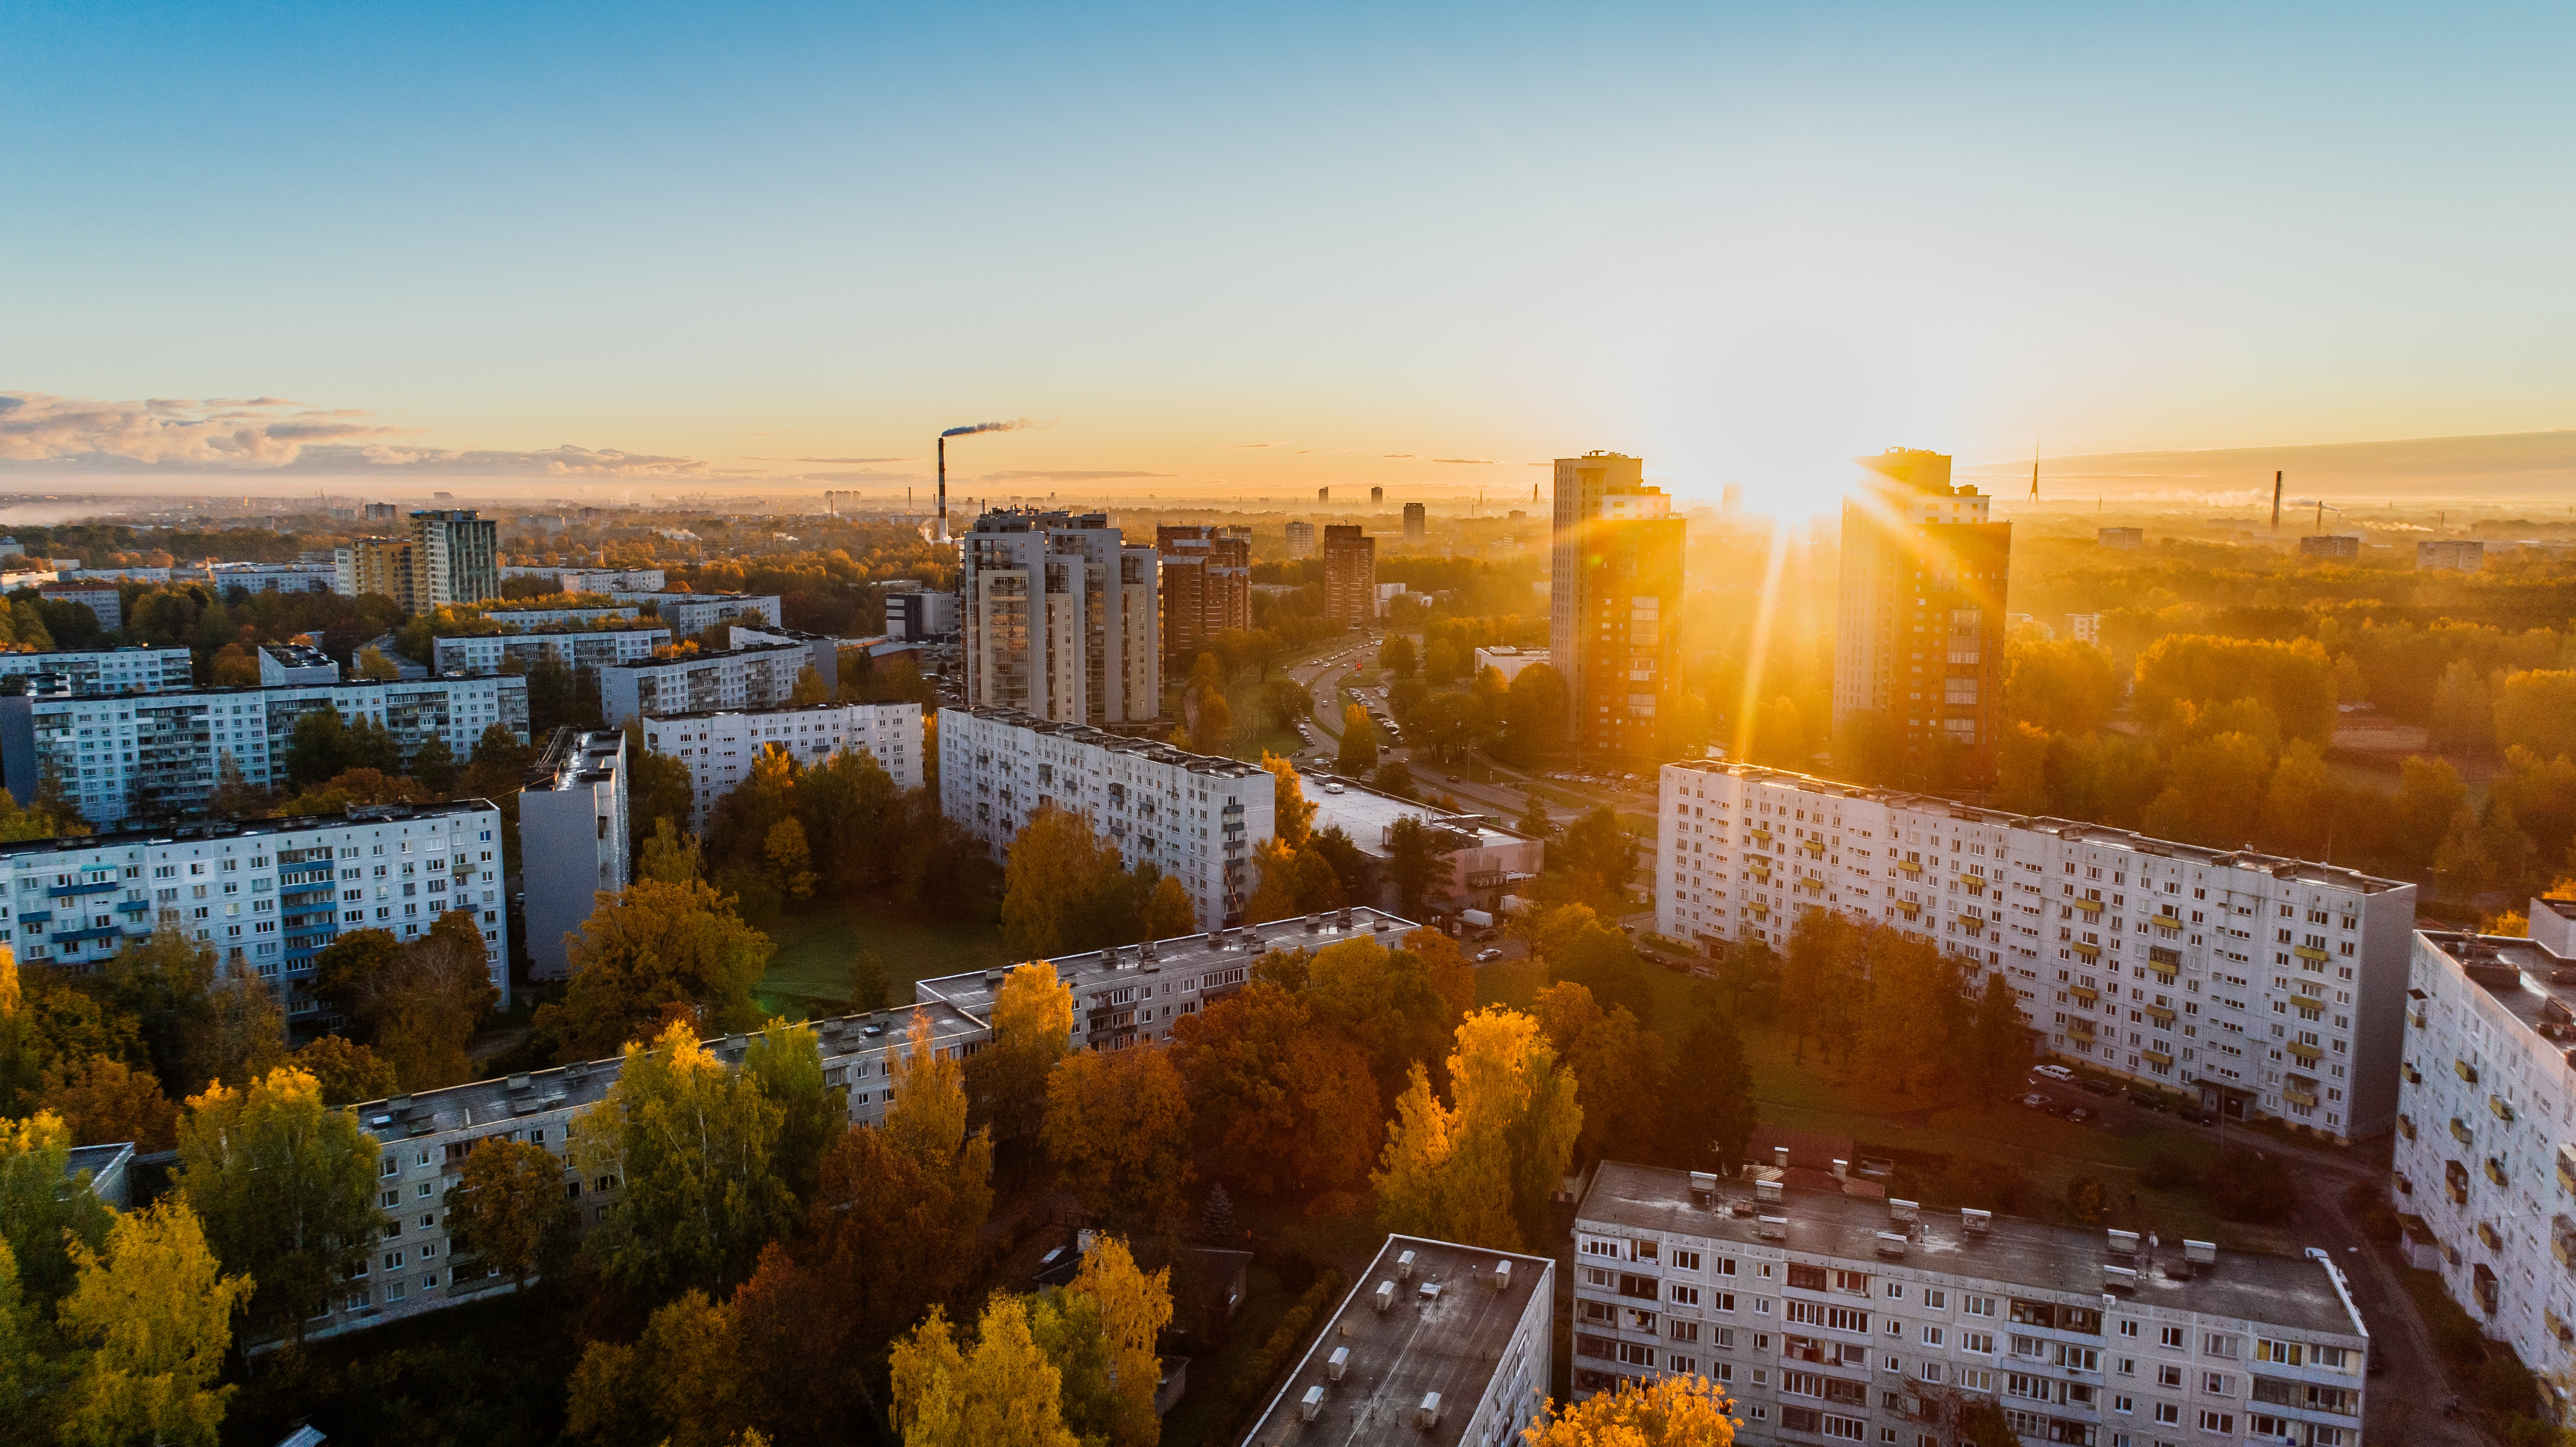 Aerial View of White Concrete Buildings during Golden Hours, Aerial, Scenic, Sky, Skyline, HQ Photo